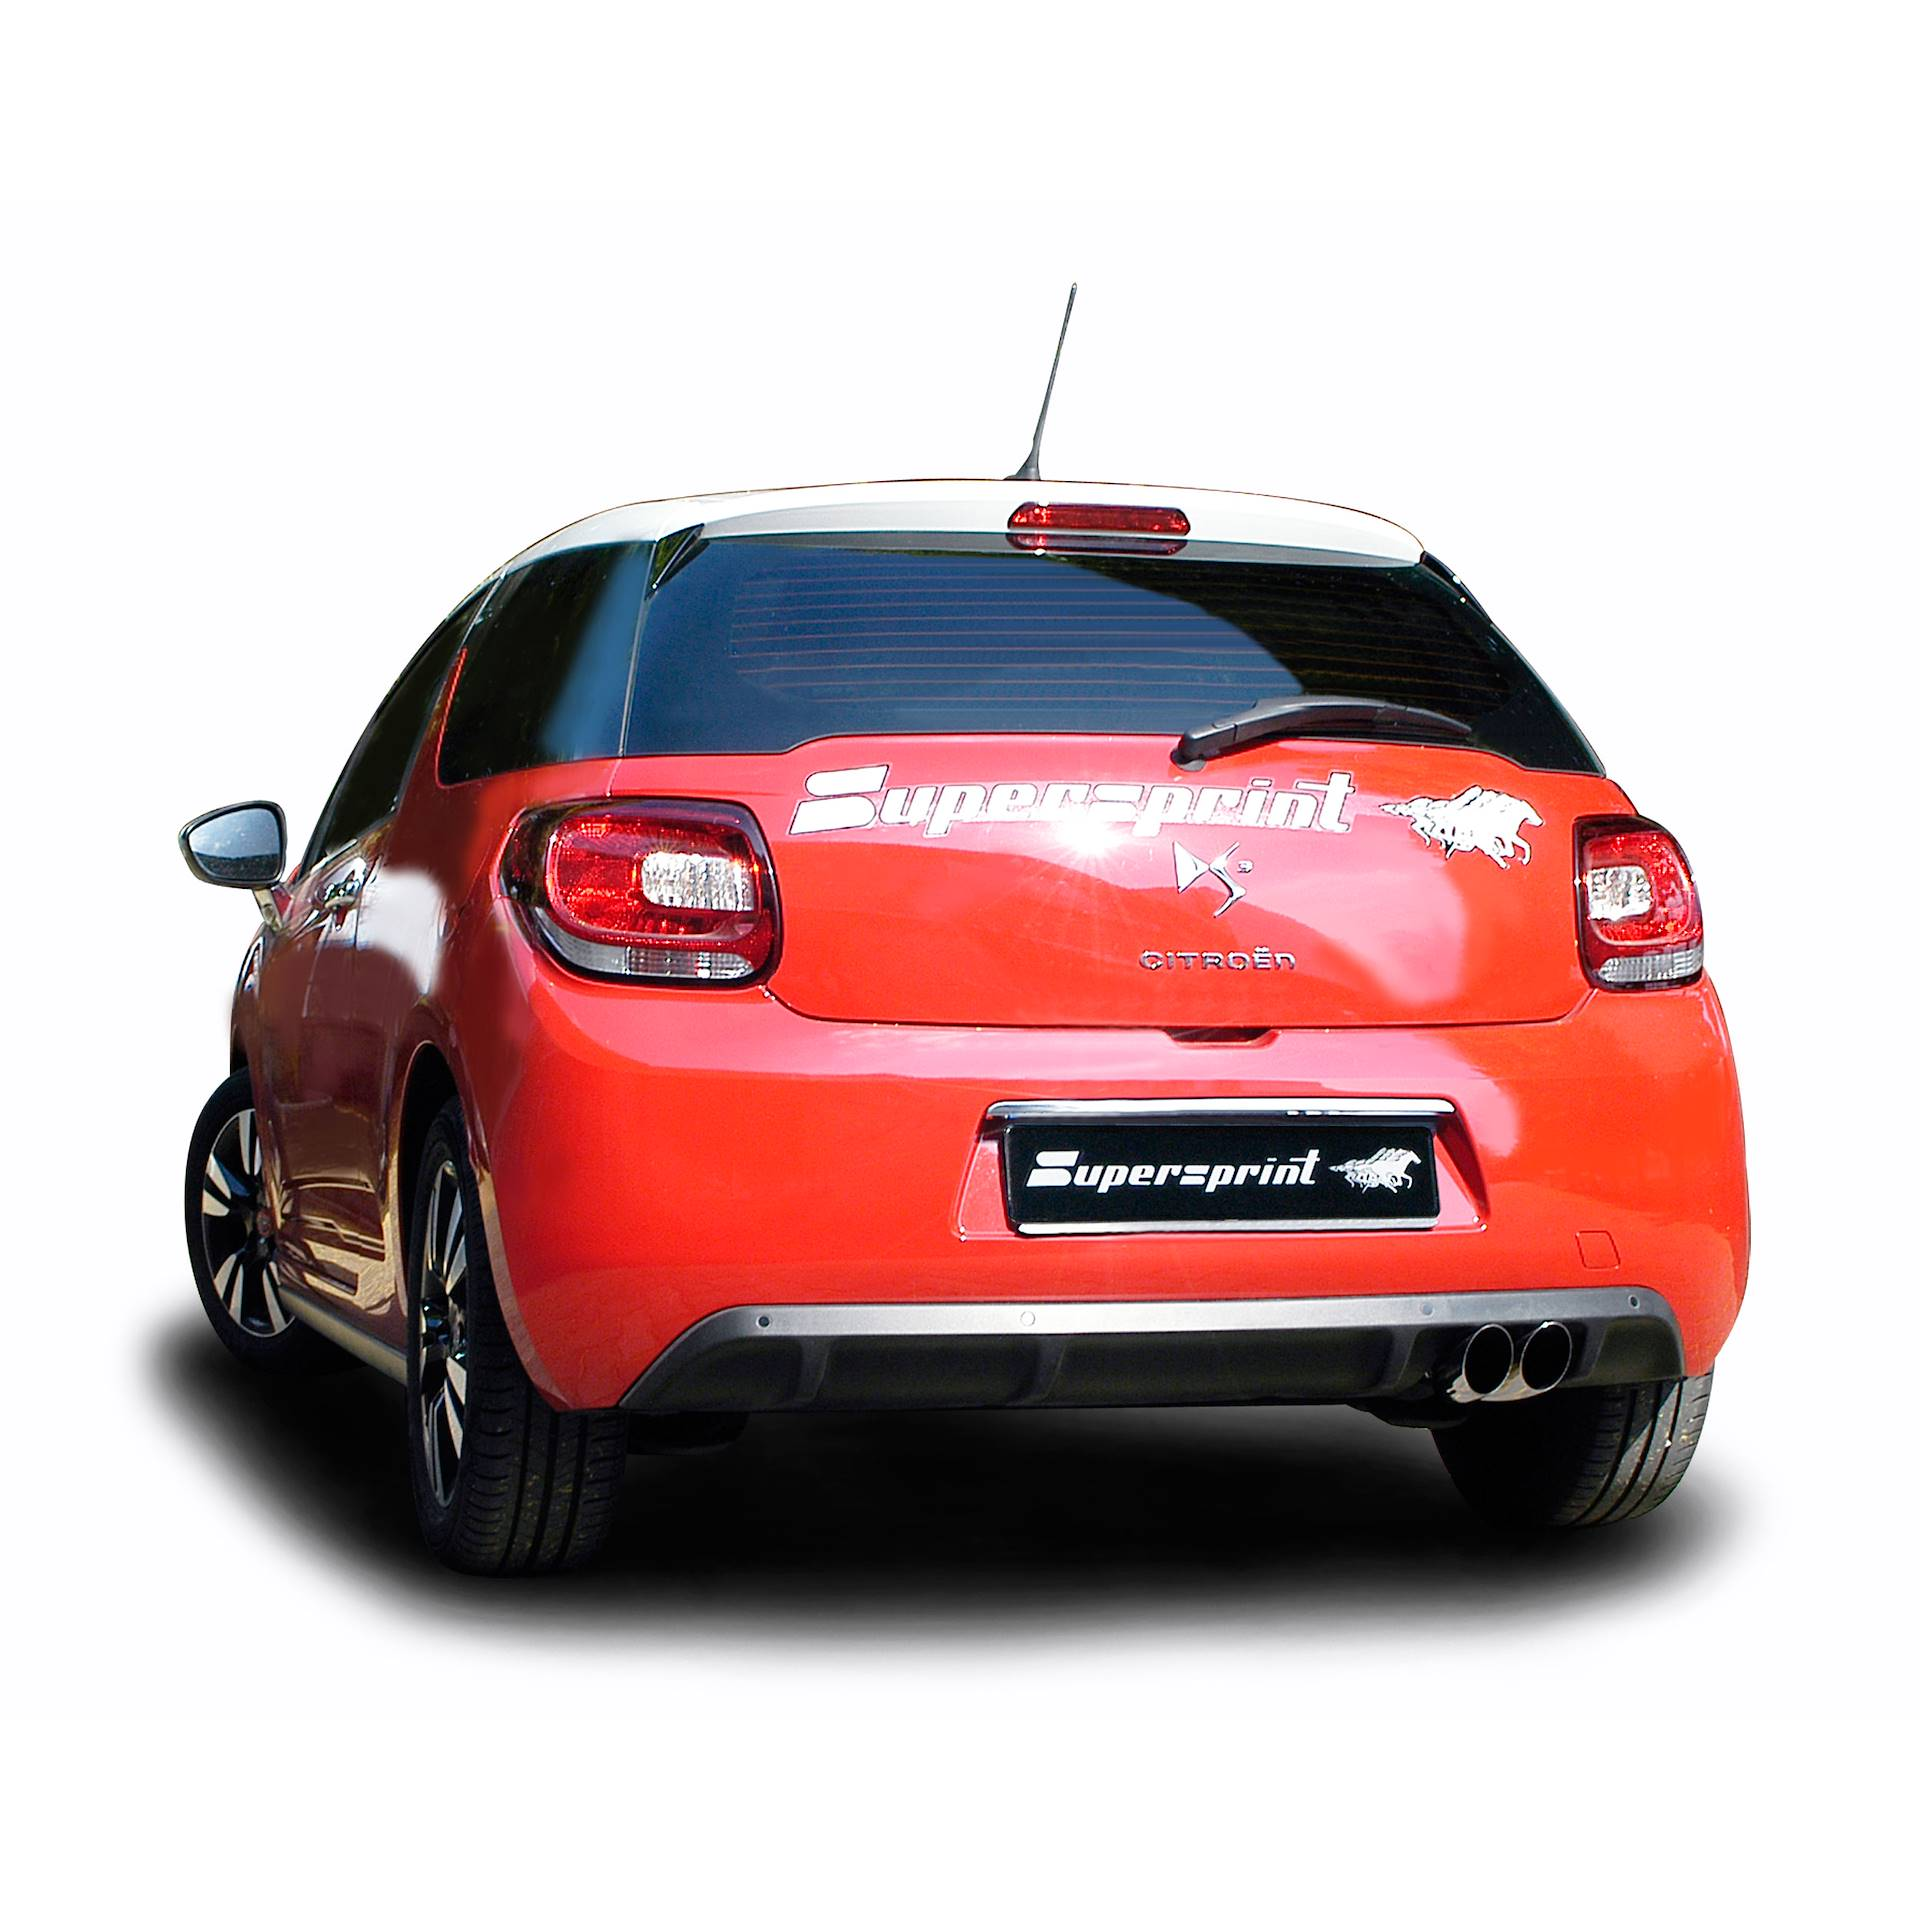 CITROËN DS3 VTi 1.6i 16v (120 Hp) 2010 ->